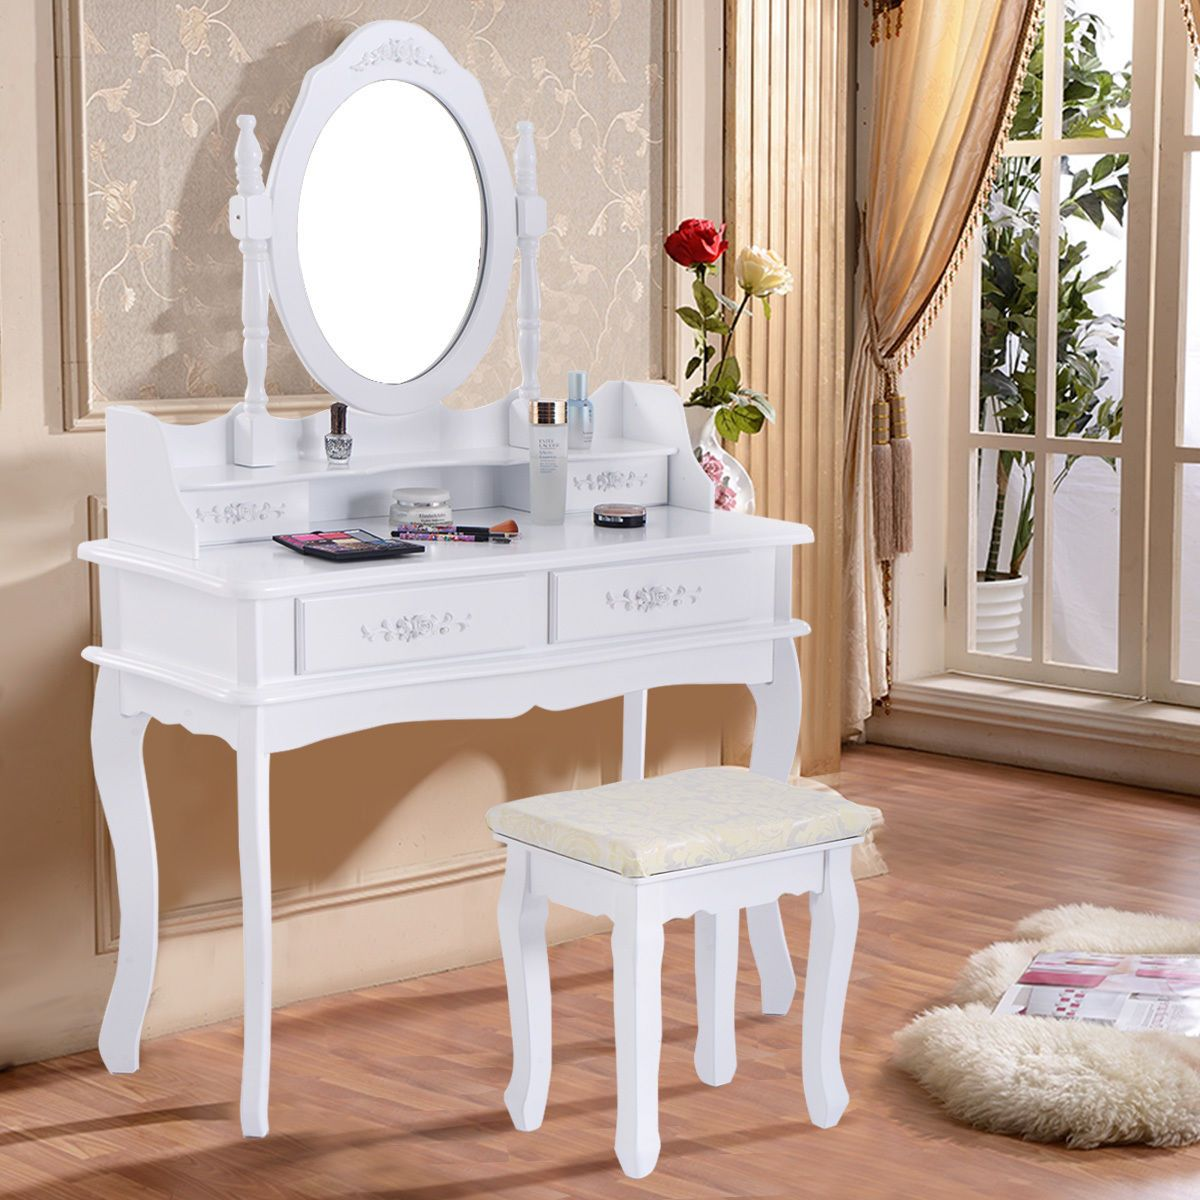 White Vanity Jewelry Makeup Dressing Table Set W/Stool 4